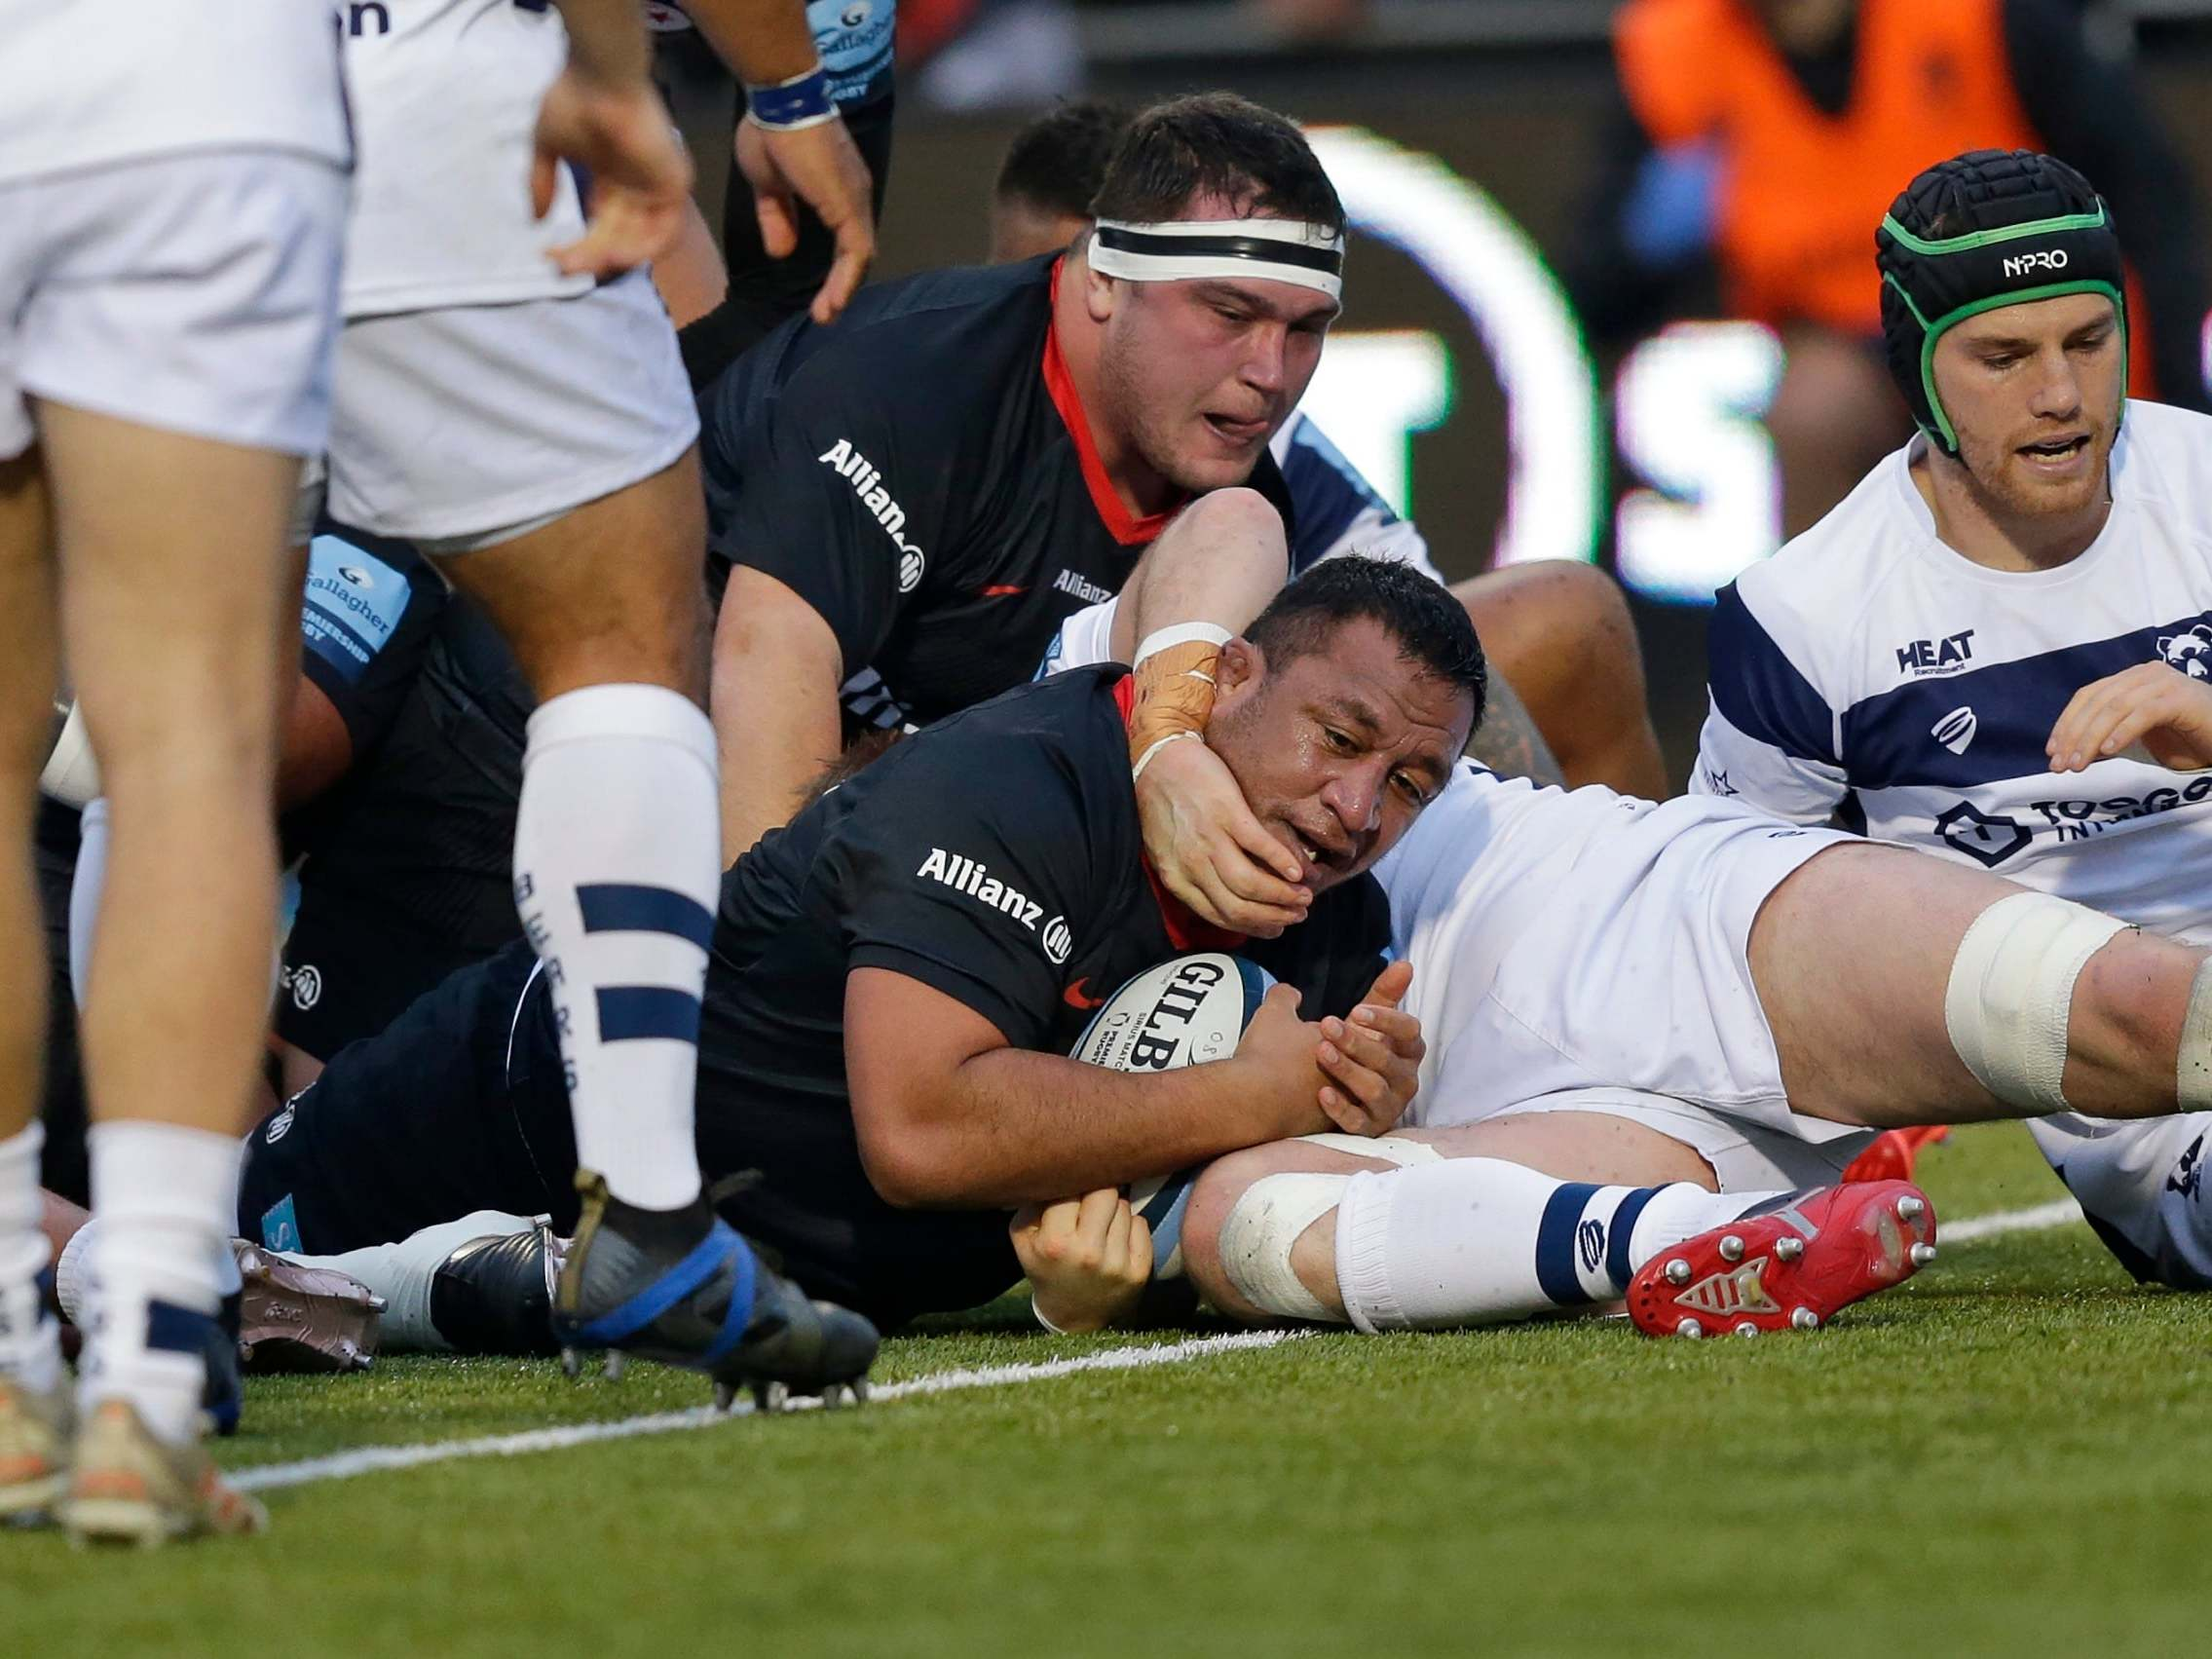 Saracens vs Bristol Bears LIVE: Latest score, stream and updates from today's match